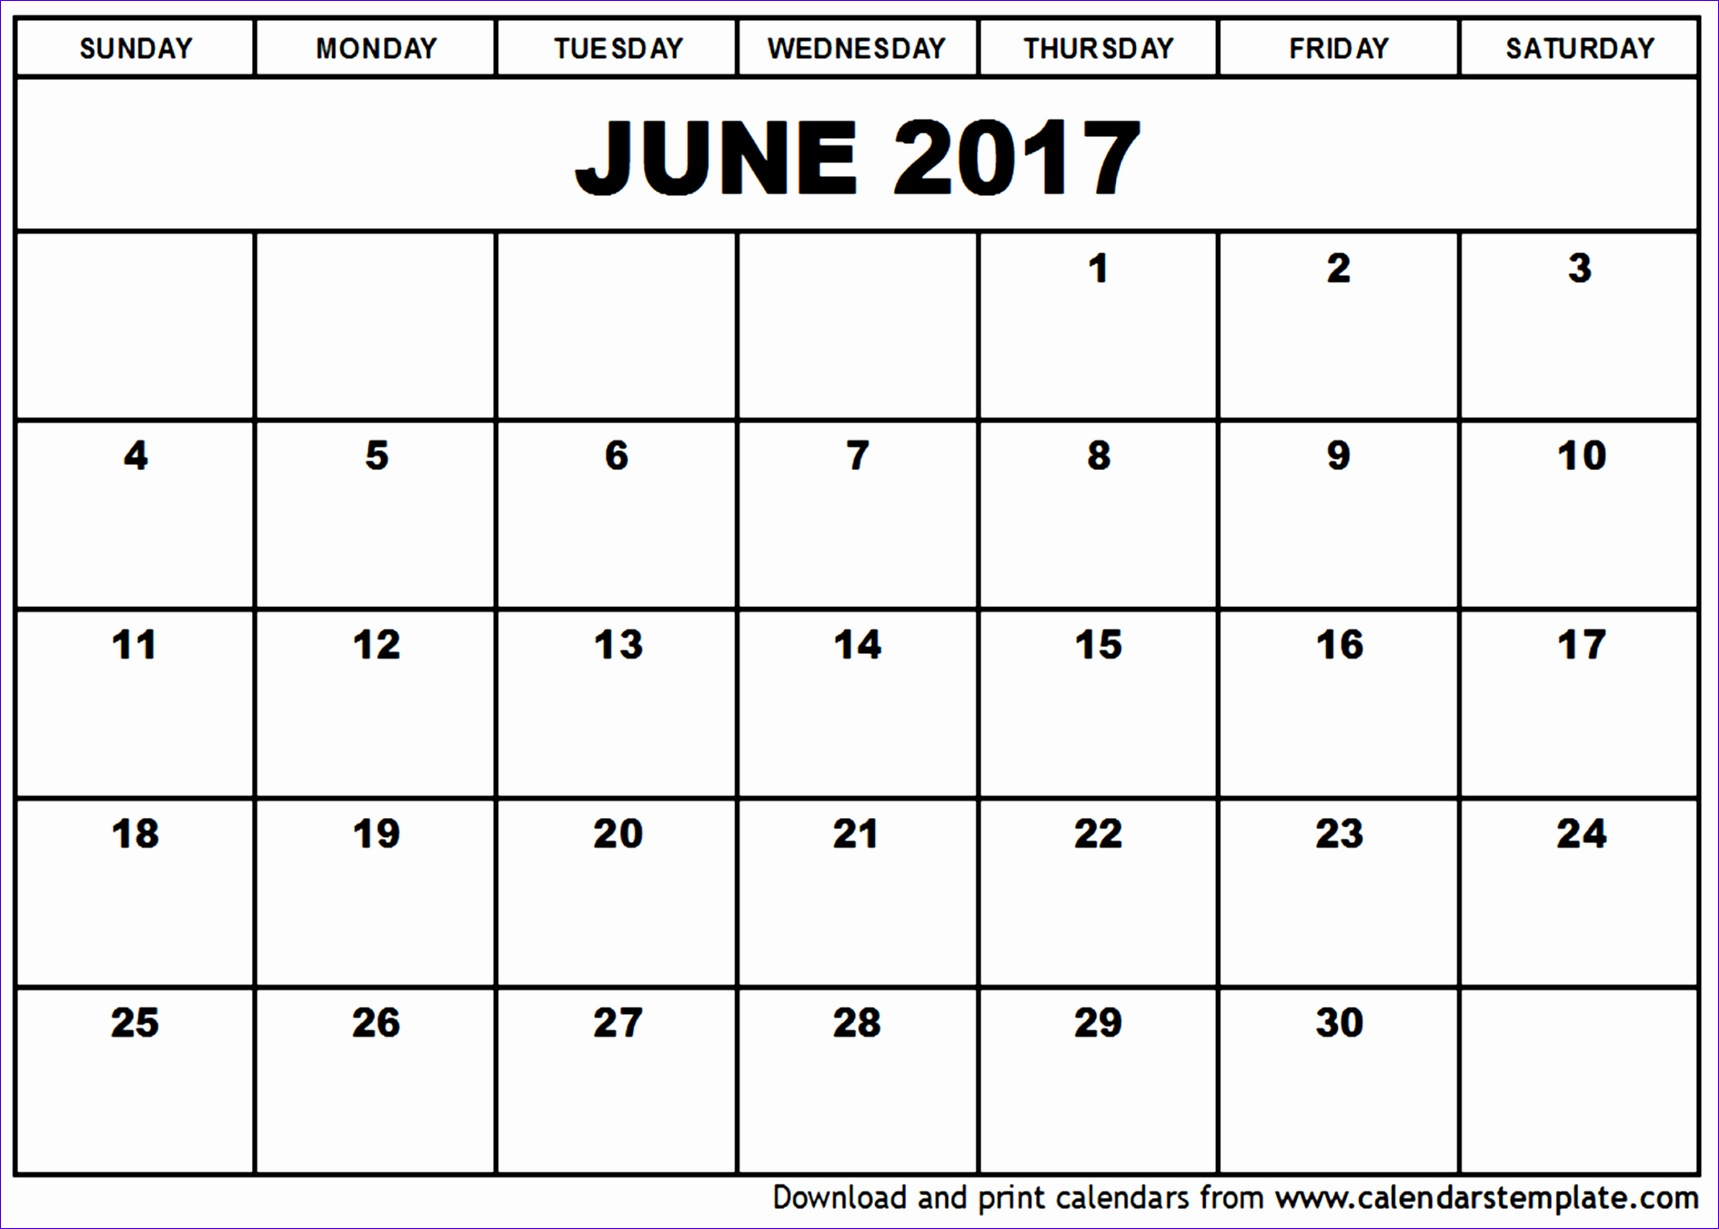 Calendar Excel Templates U3gbc Fresh June 2017 Printable Calendar Free Download Pdf Word Excel 18901336